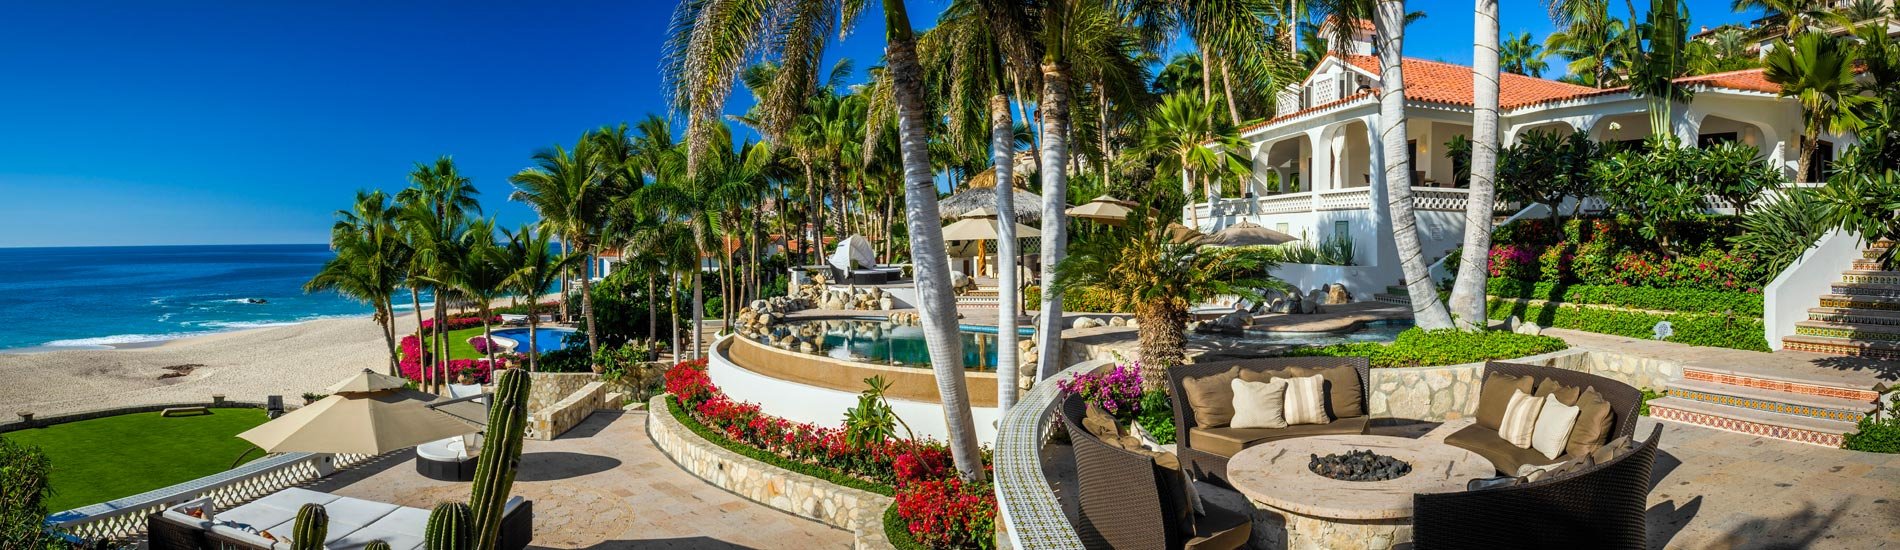 los cabos luxury villas